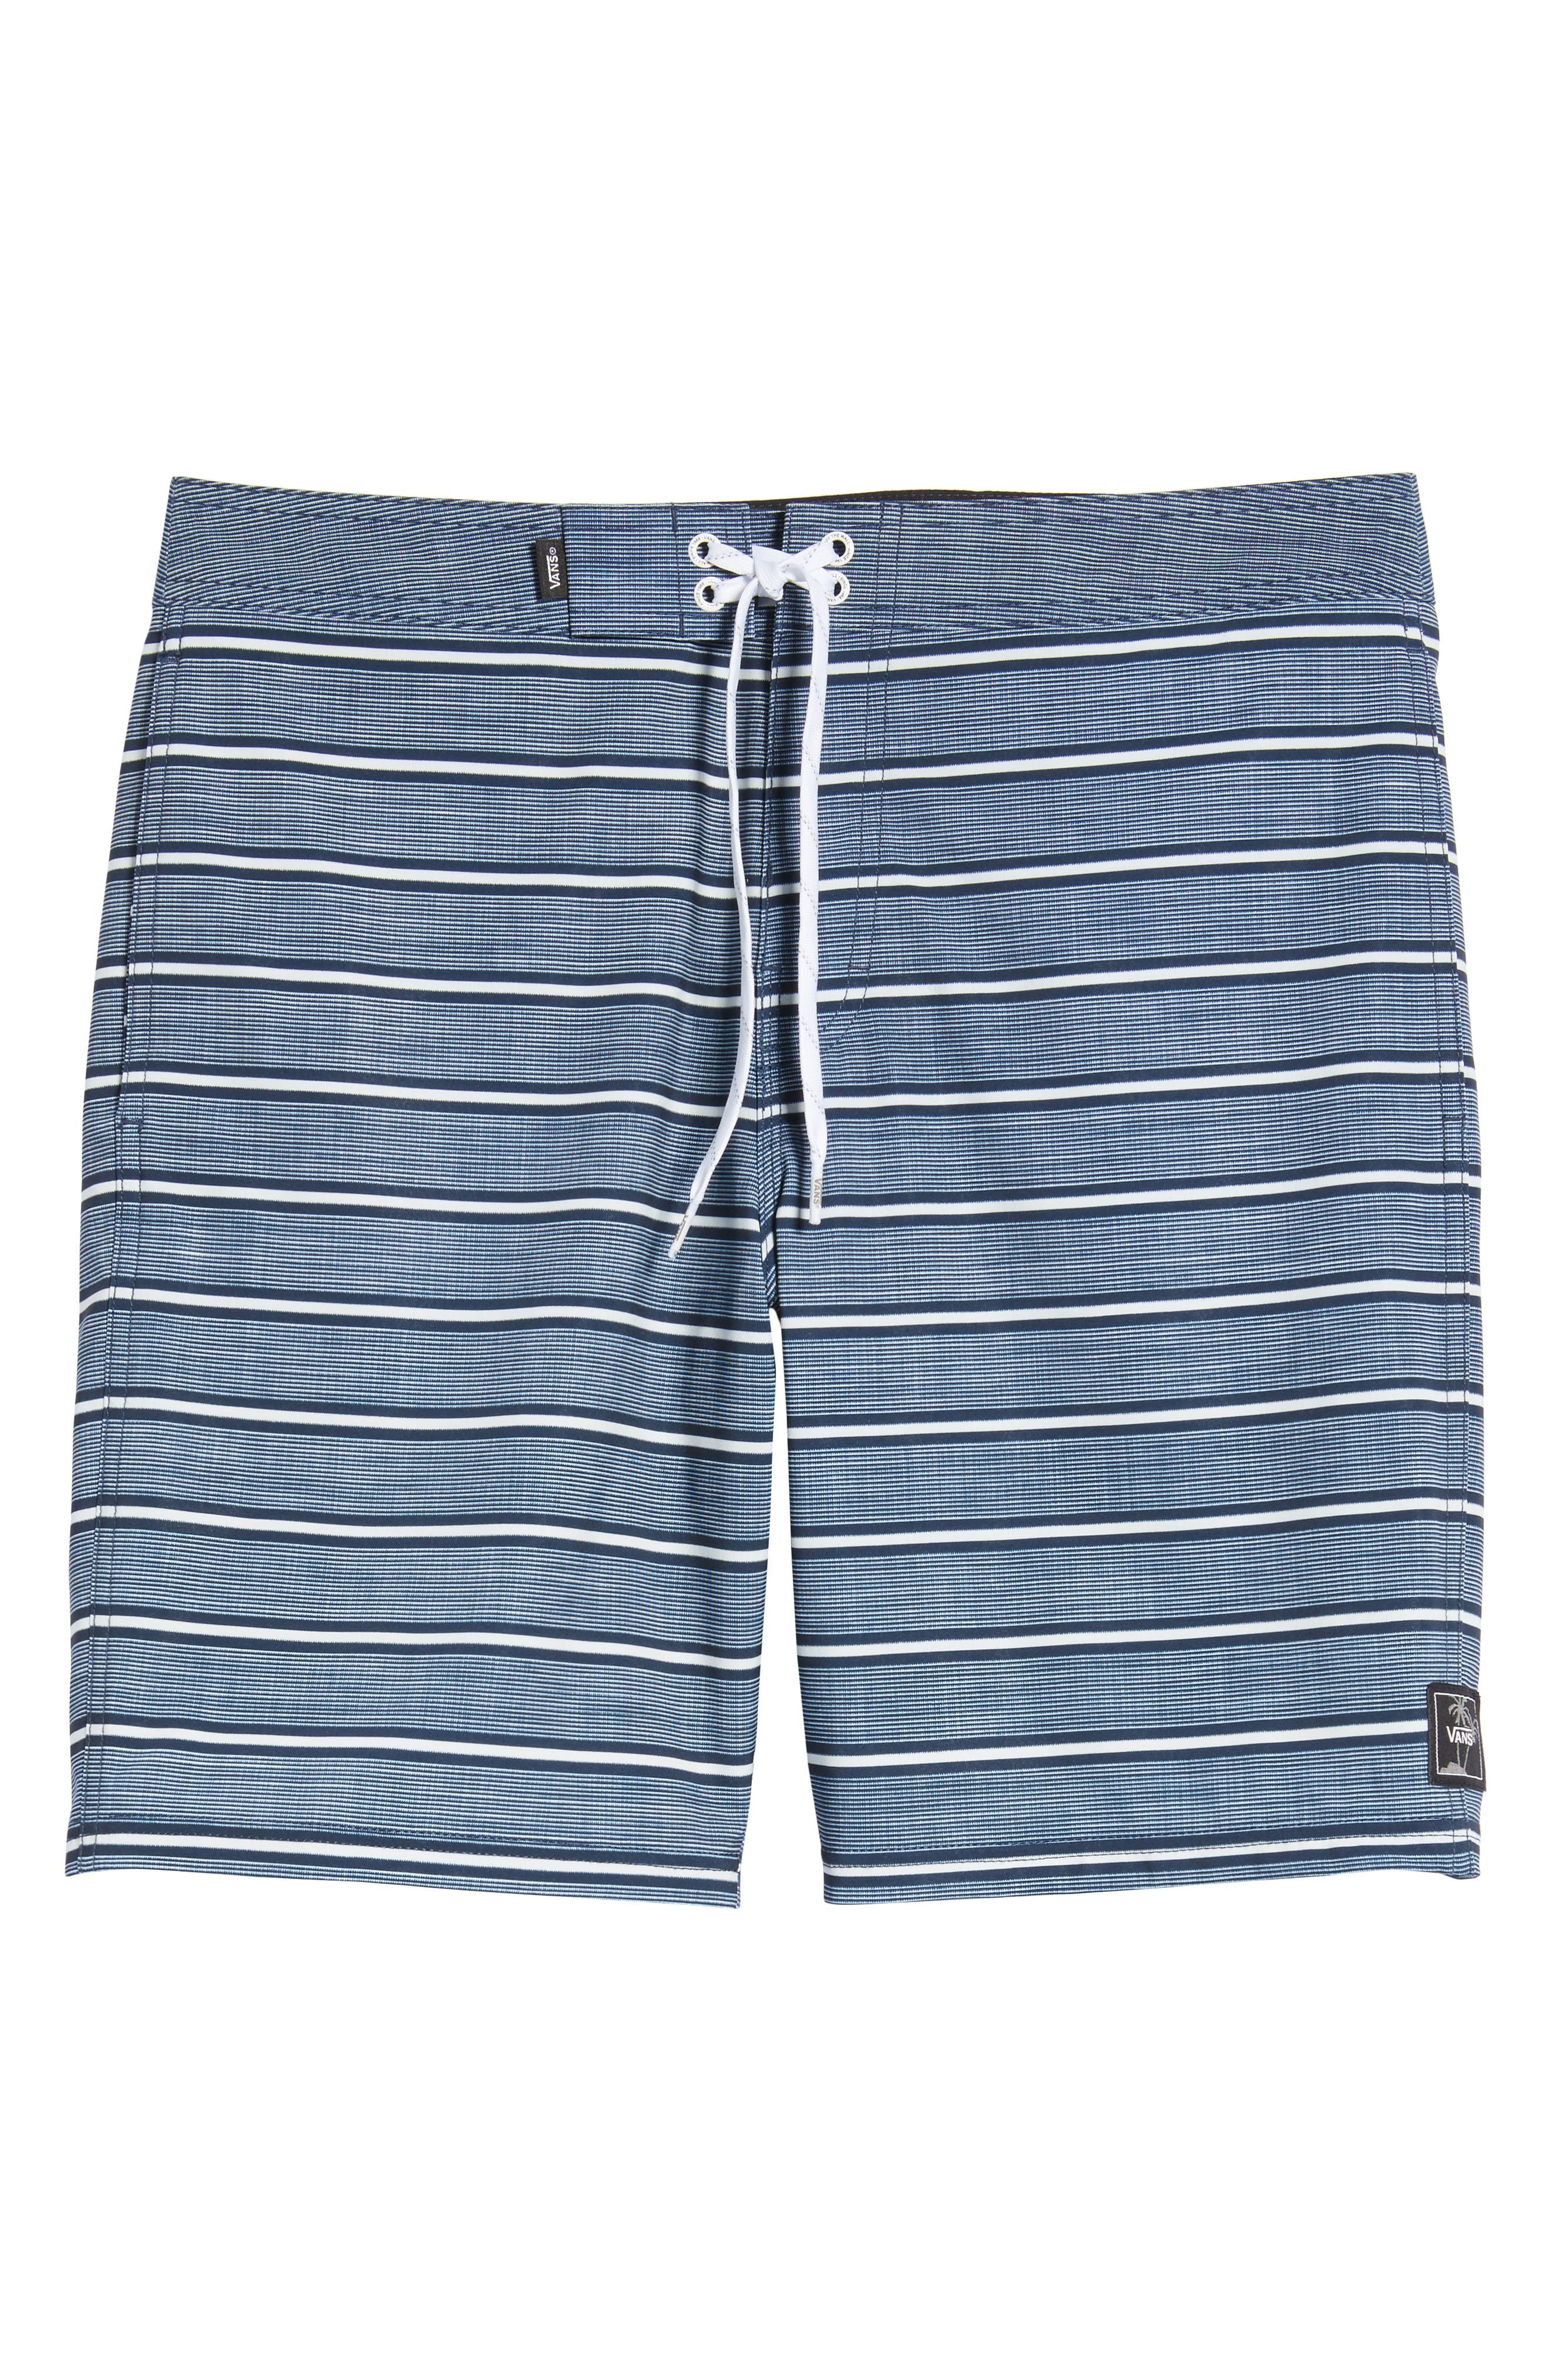 Rooftop Board Shorts,                             Alternate thumbnail 5, color,                             Dress Blues